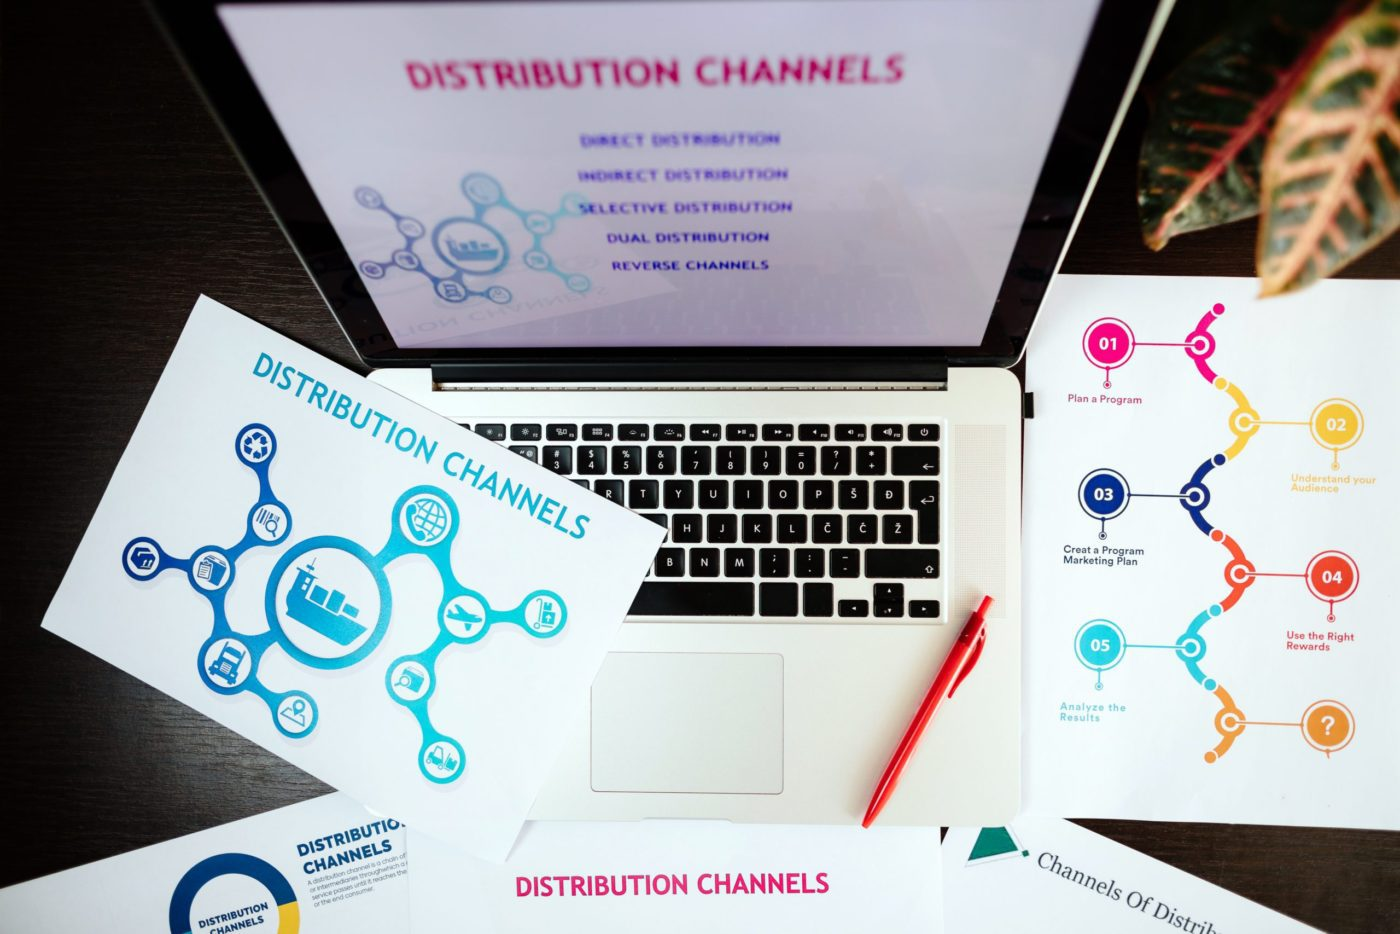 marketing distribution channels plan on office desk. Marketing manager desk with plans and strategy of distributive channels for new product.